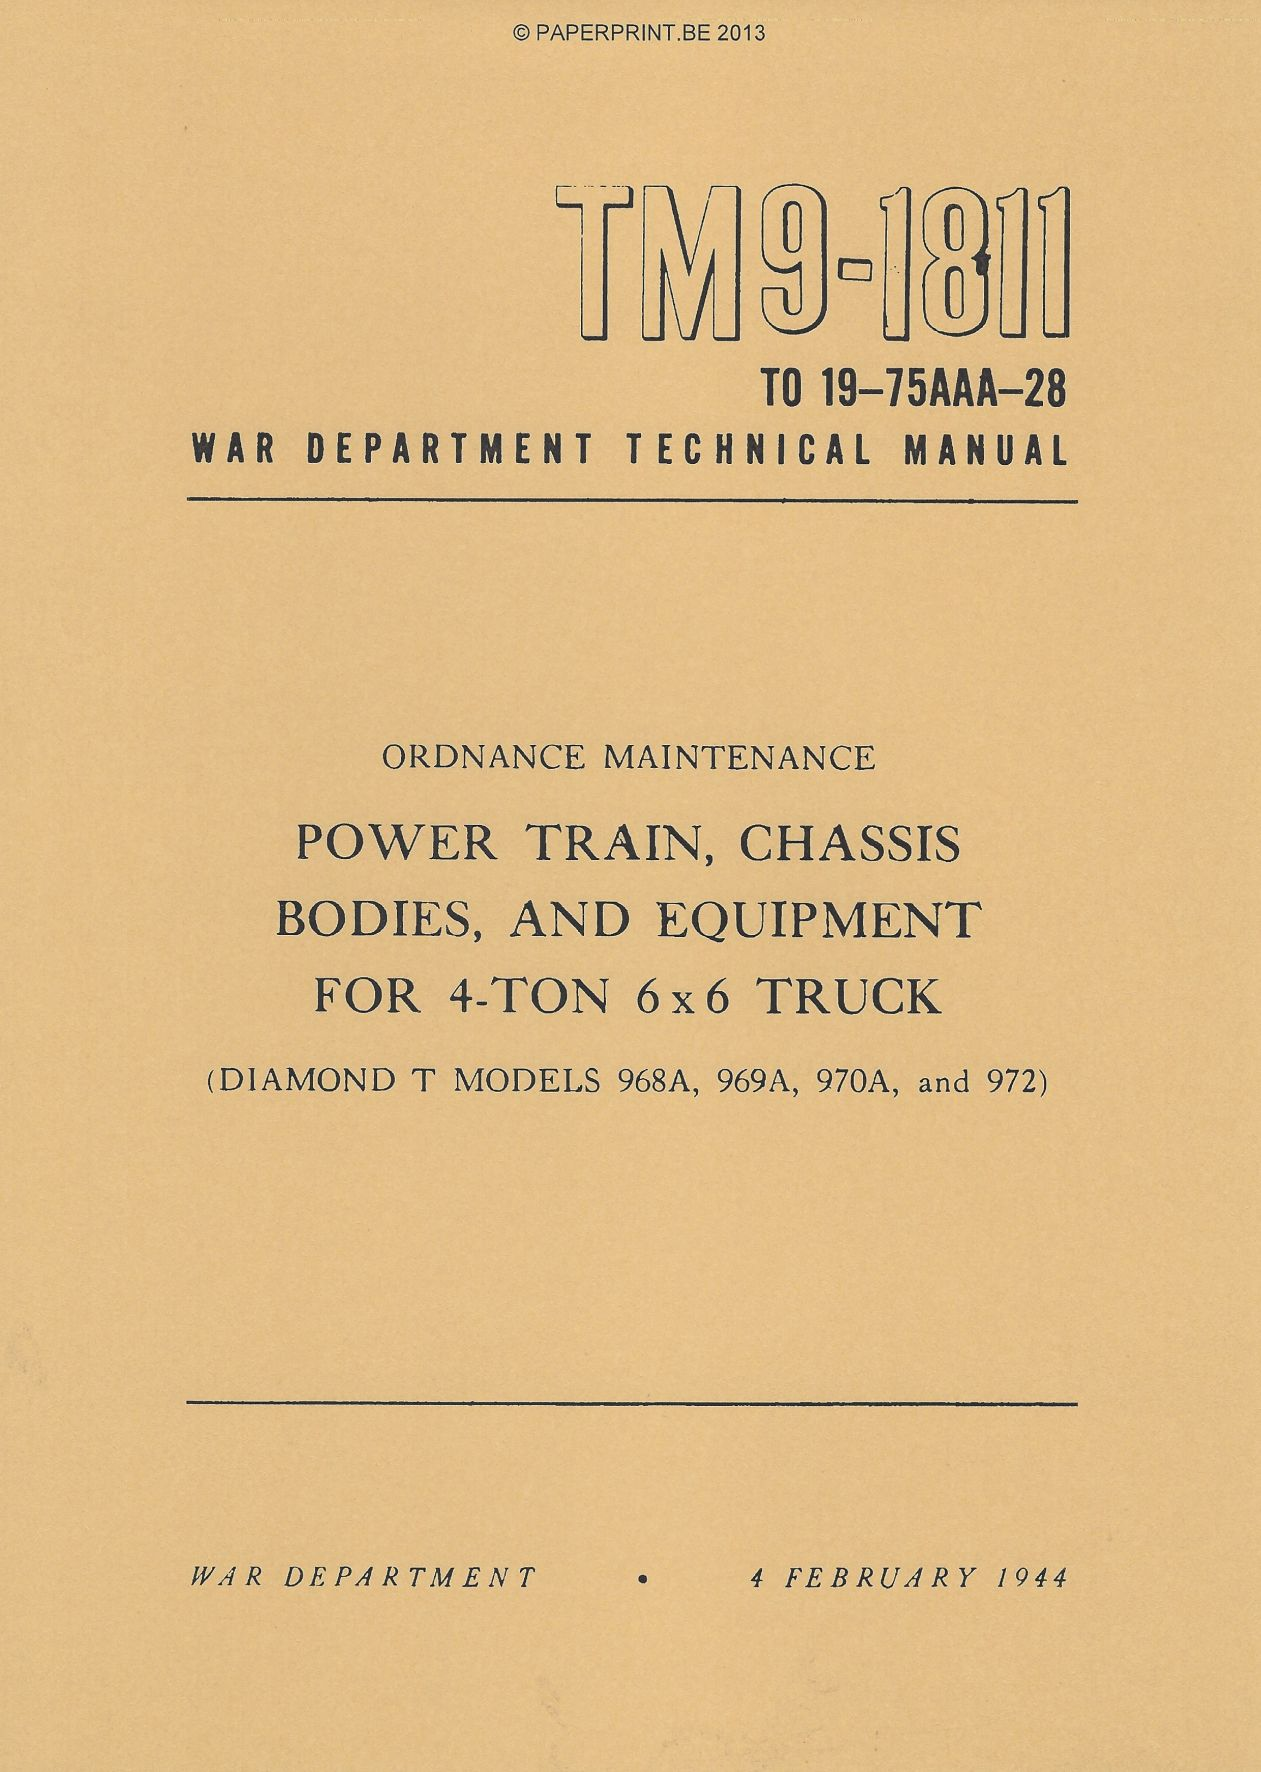 TM 9-1811 US POWER TRAIN, CHASSIS BODDIES, AND EQUIPMENT FOR 4-TON 6x6 TRUCK DIAMOND T